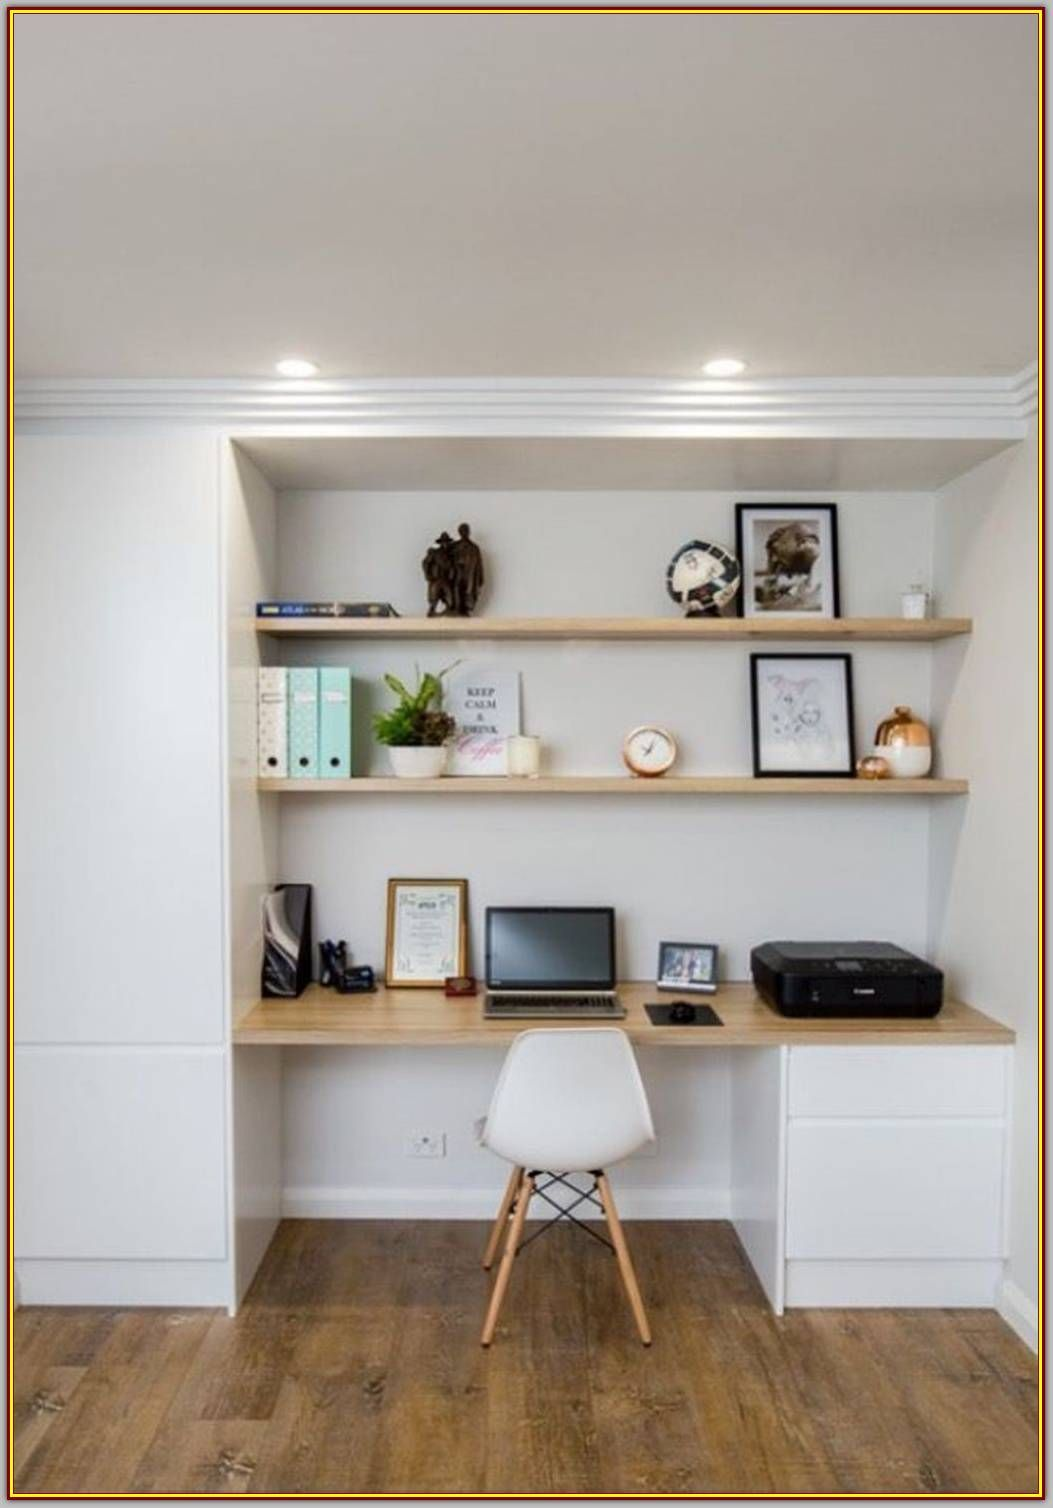 Furnish Your Home Office Decor With These Tips And Tricks Modern Interior Design Home Office Table Home Office Design Home Office Space